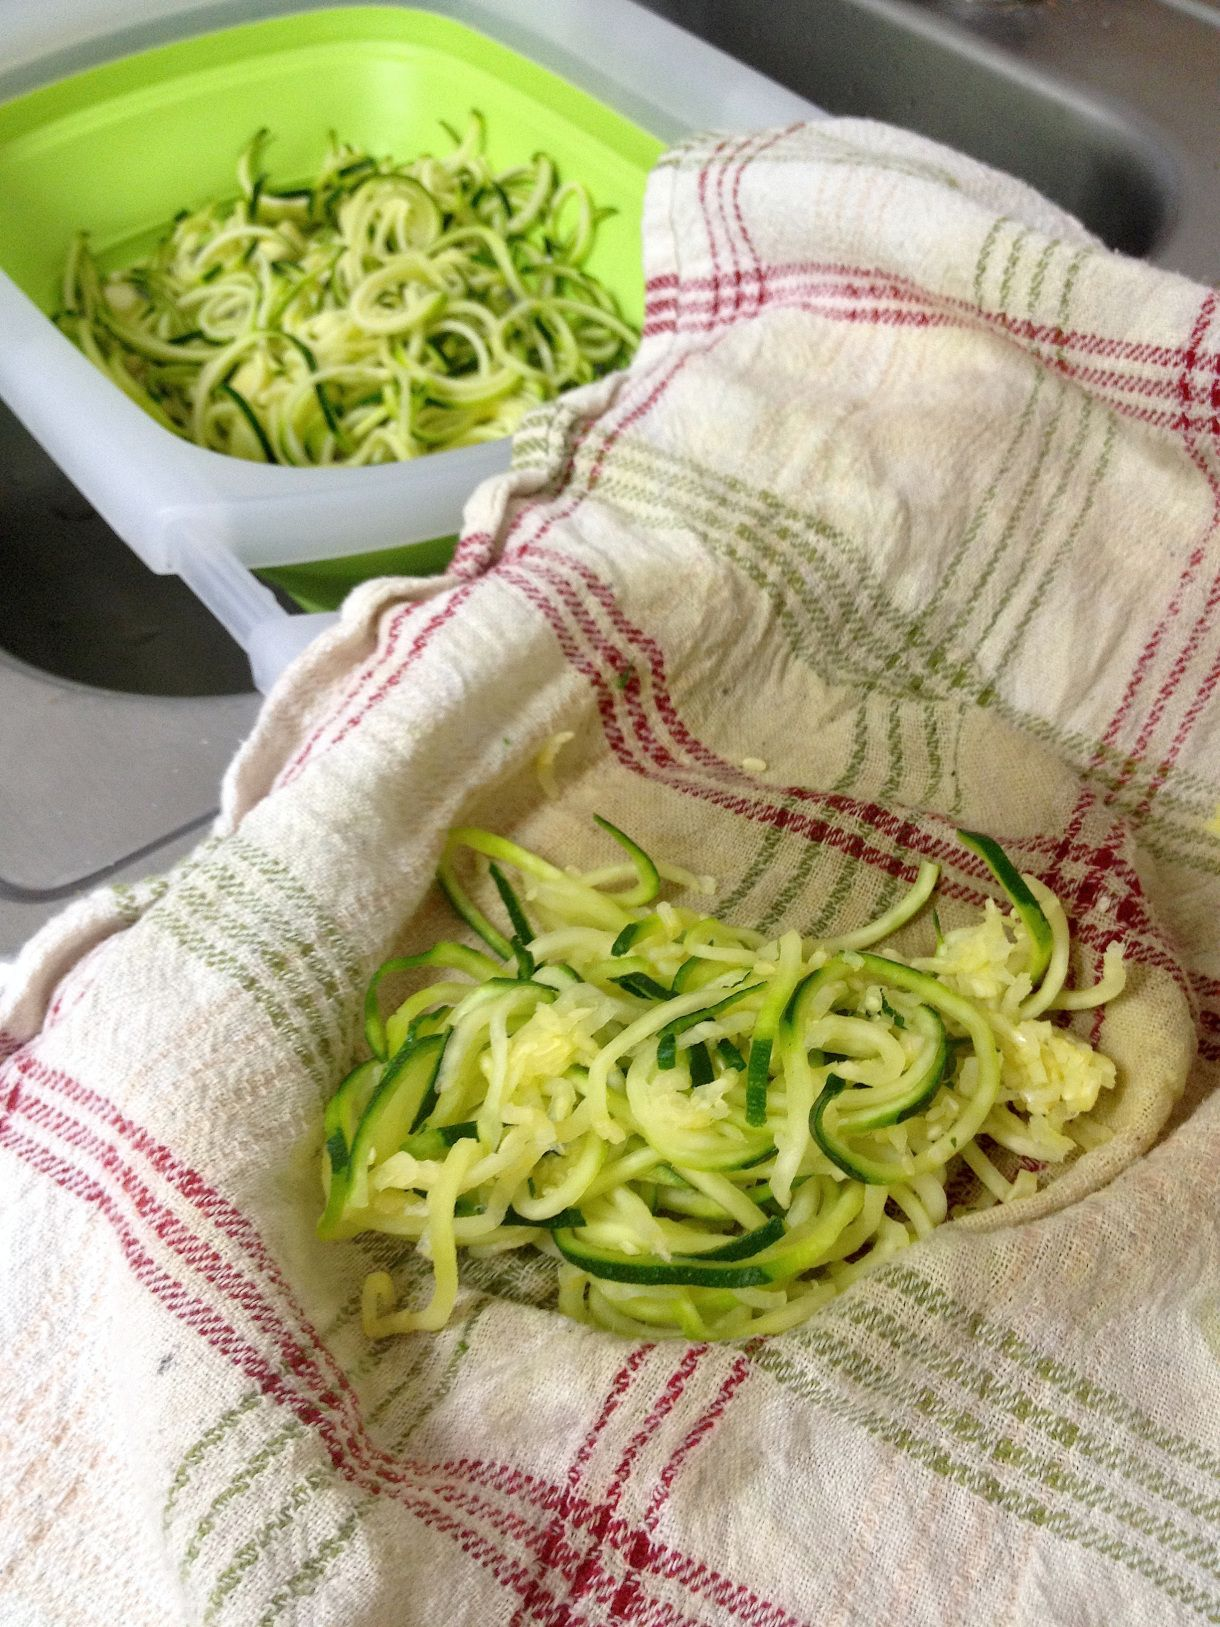 How To: Cook Perfect Zucchini Noodles images